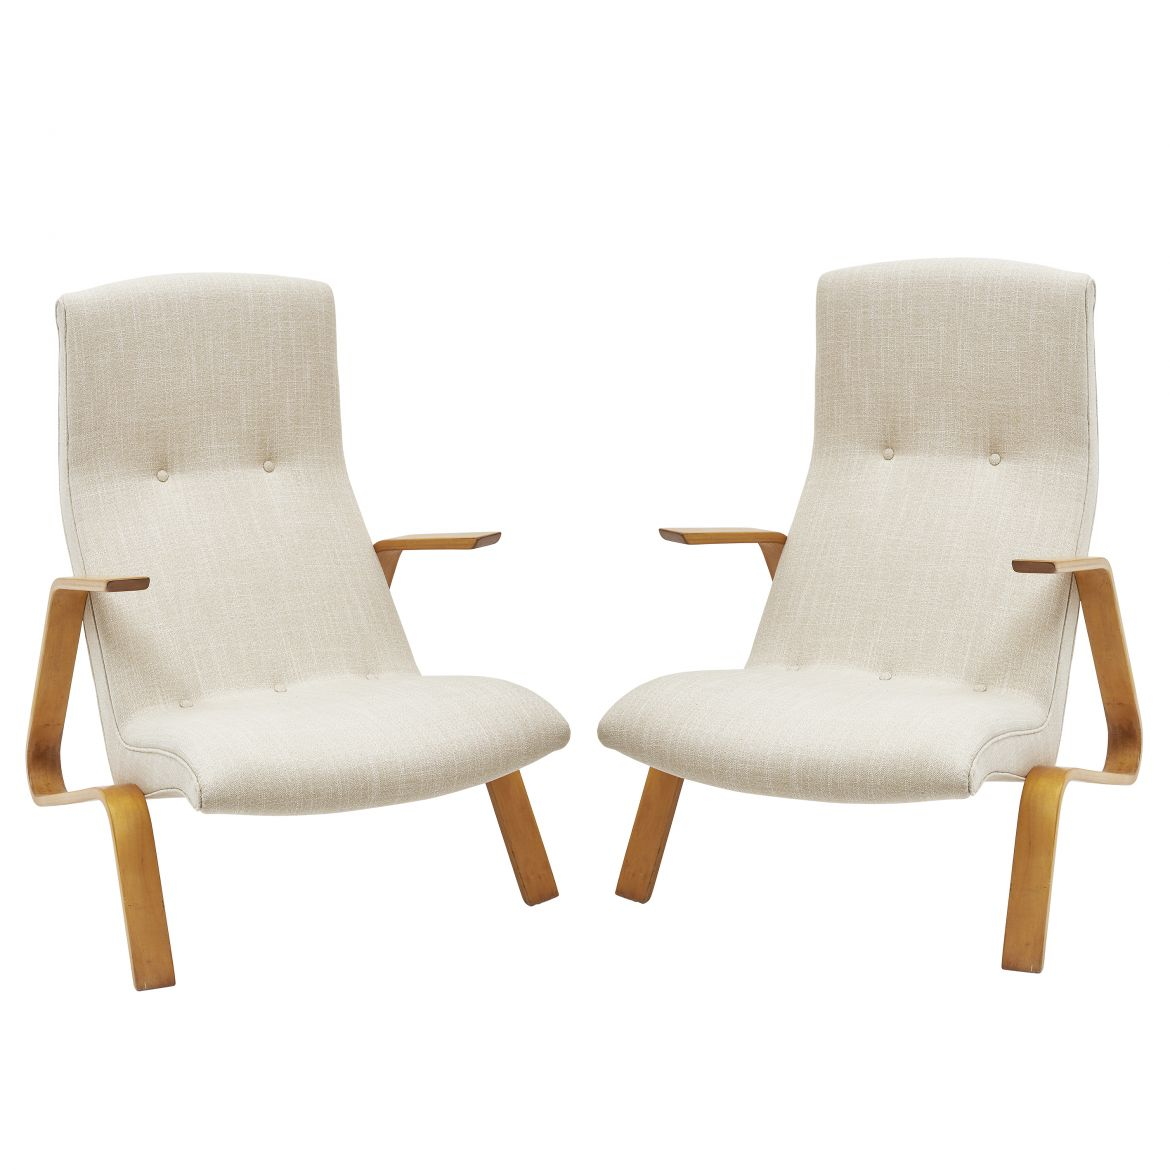 Knoll Eero Saarinen Grasshopper Chairs